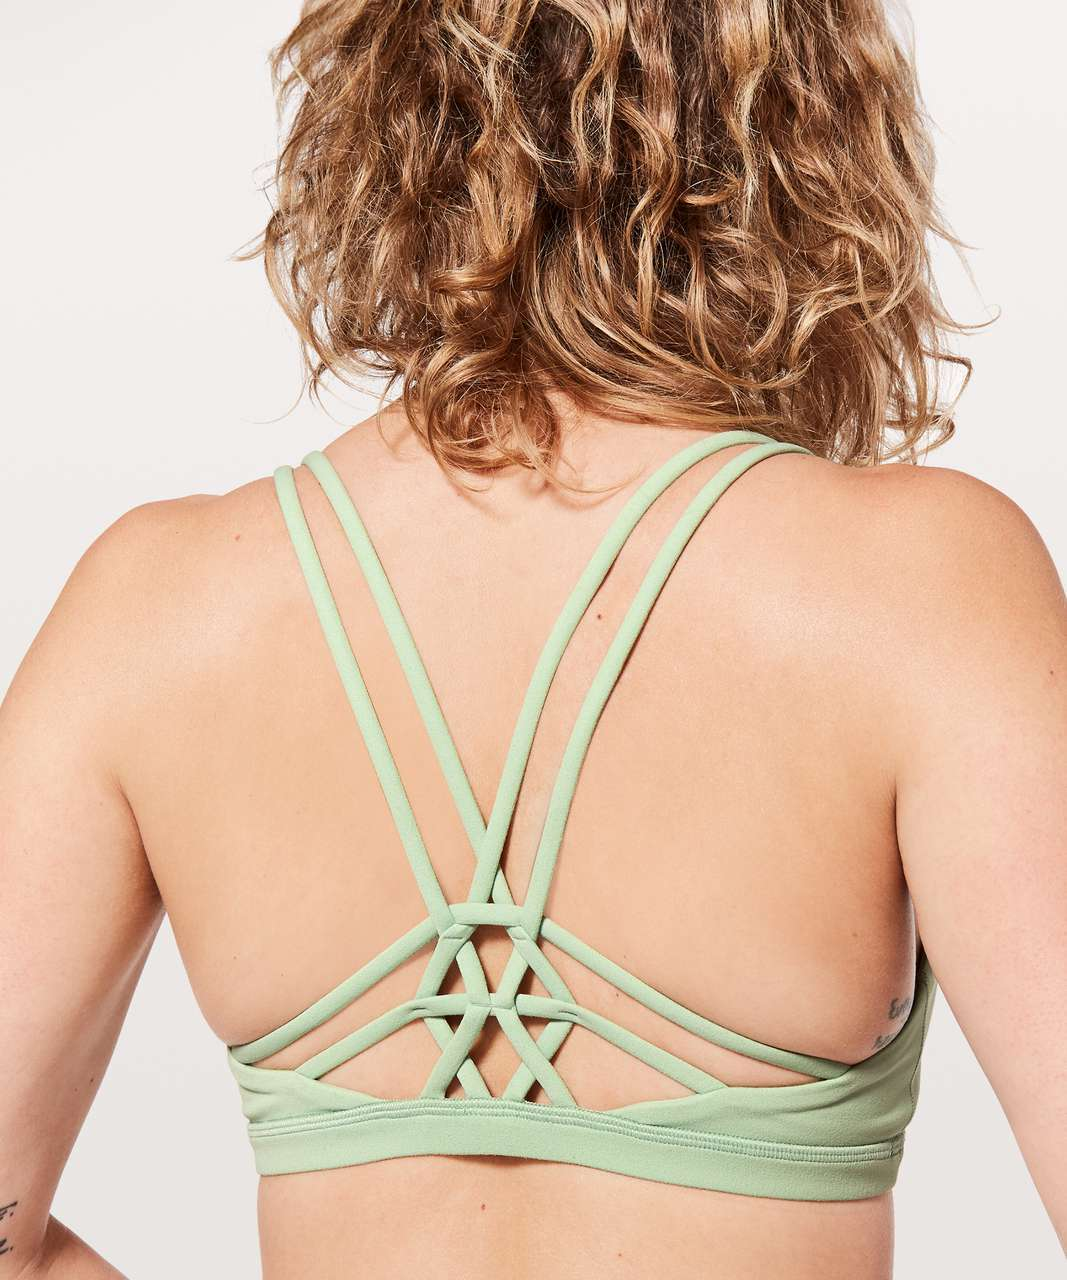 Lululemon All You Do Bra - Julep